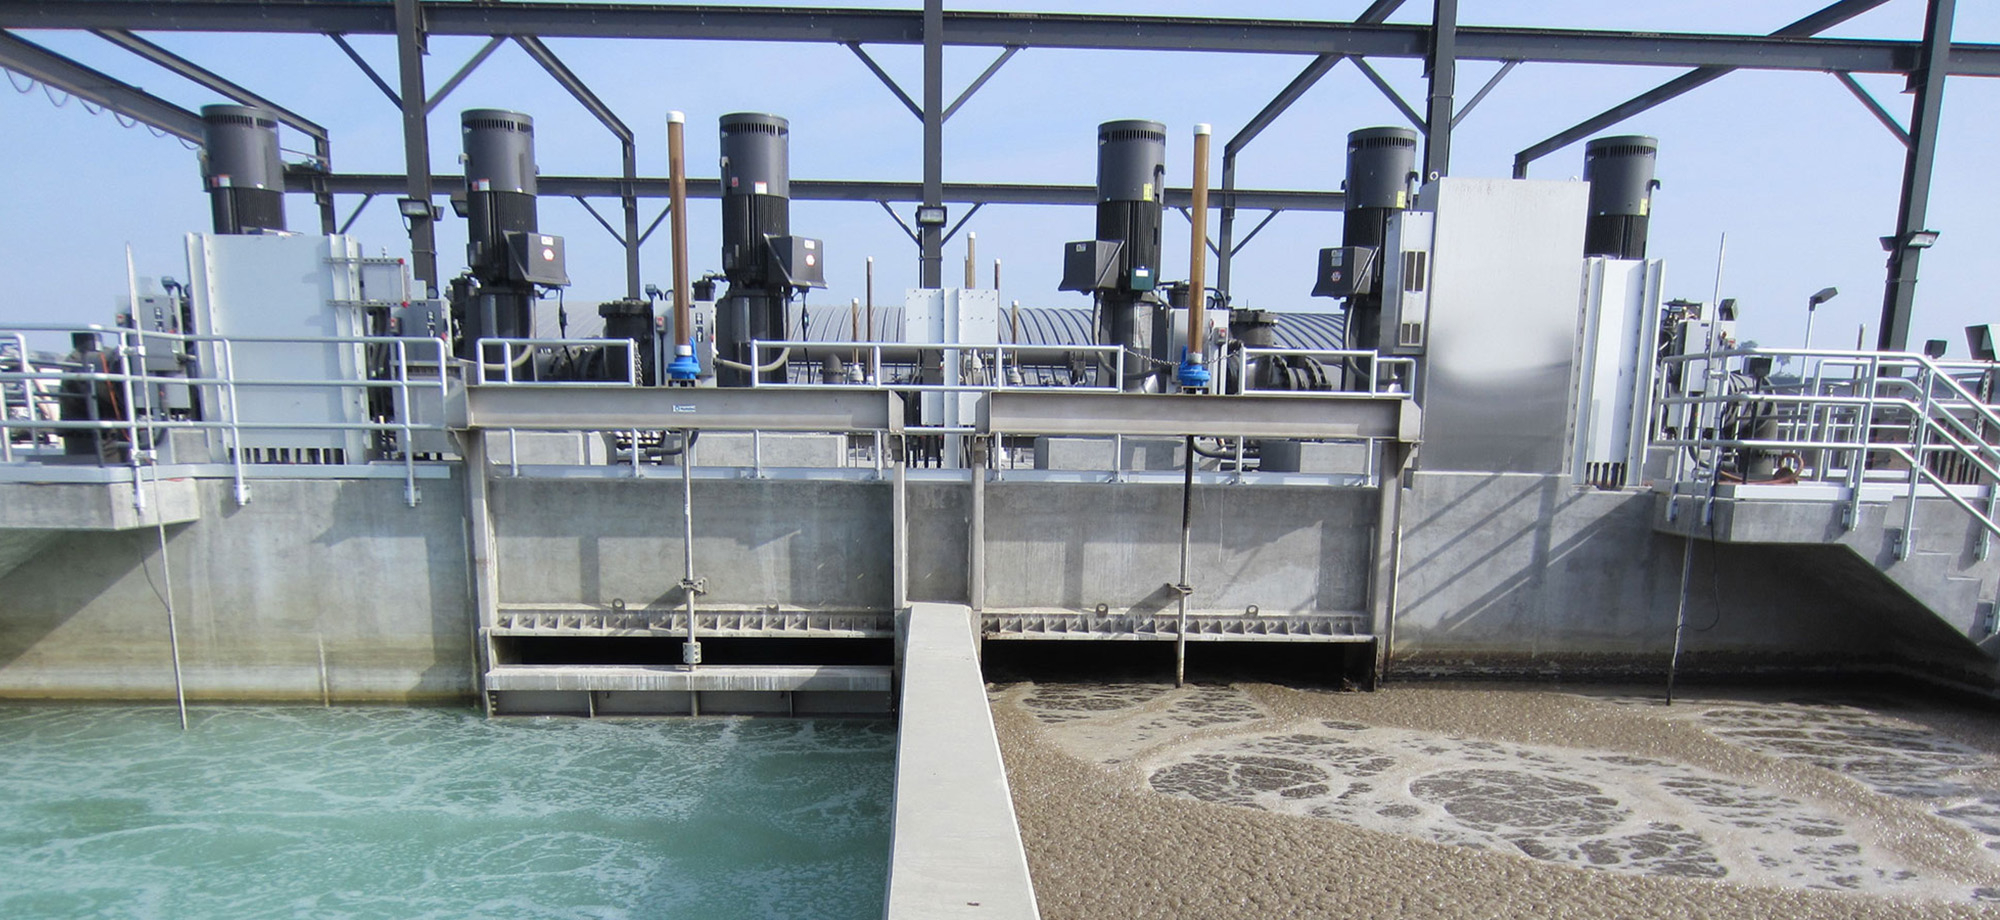 Tetra Tech provides sustainable wastewater solutions using state-of-the-art technology.